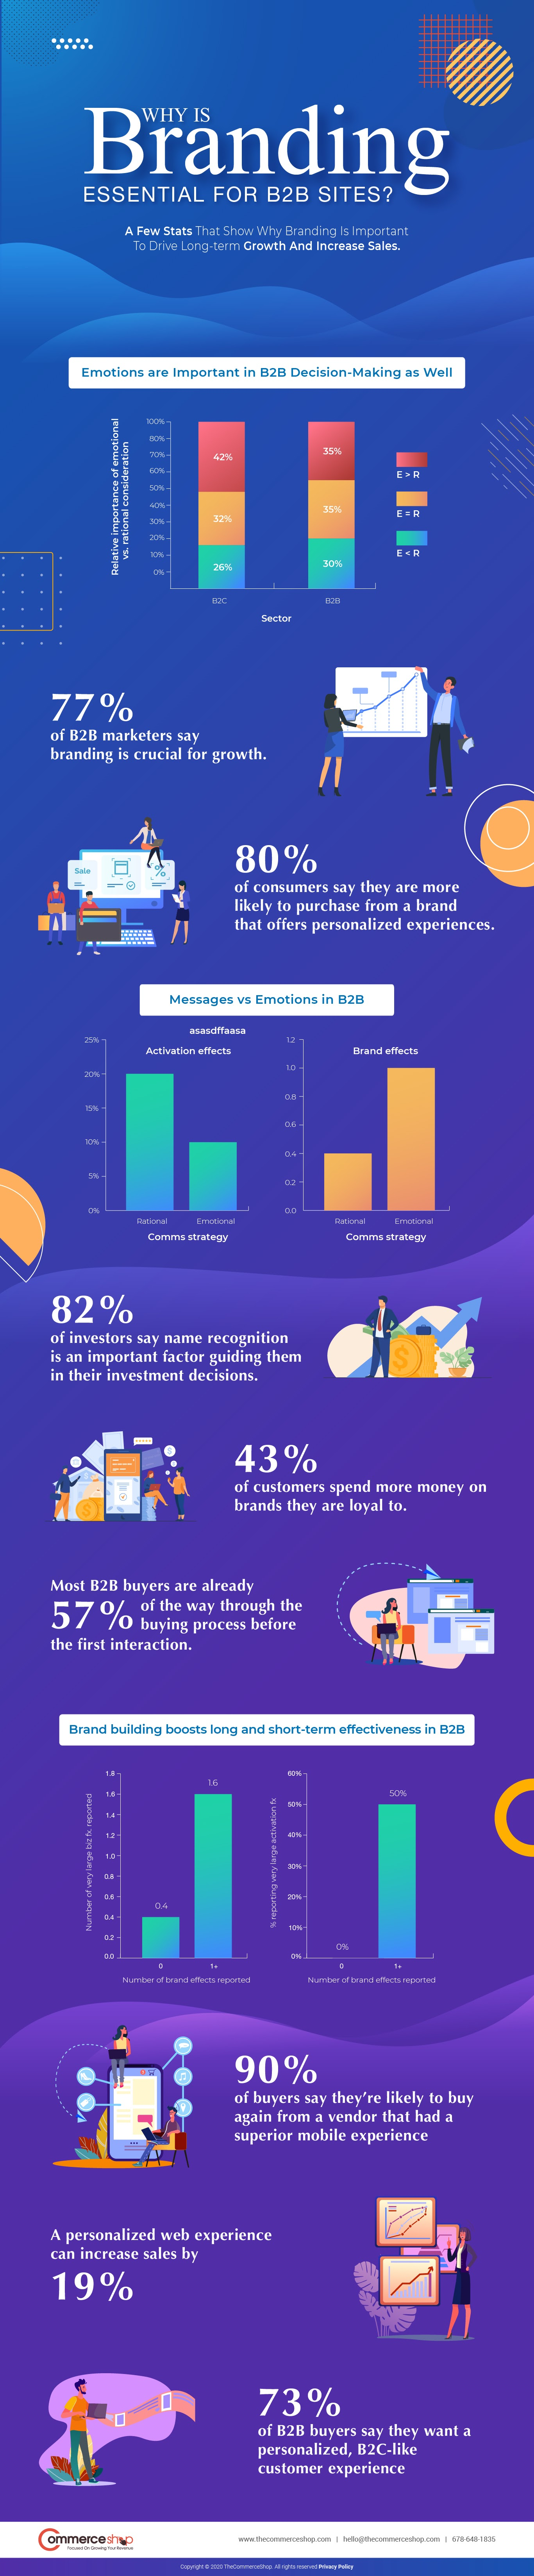 Branding is essential for B2B brands #infographic